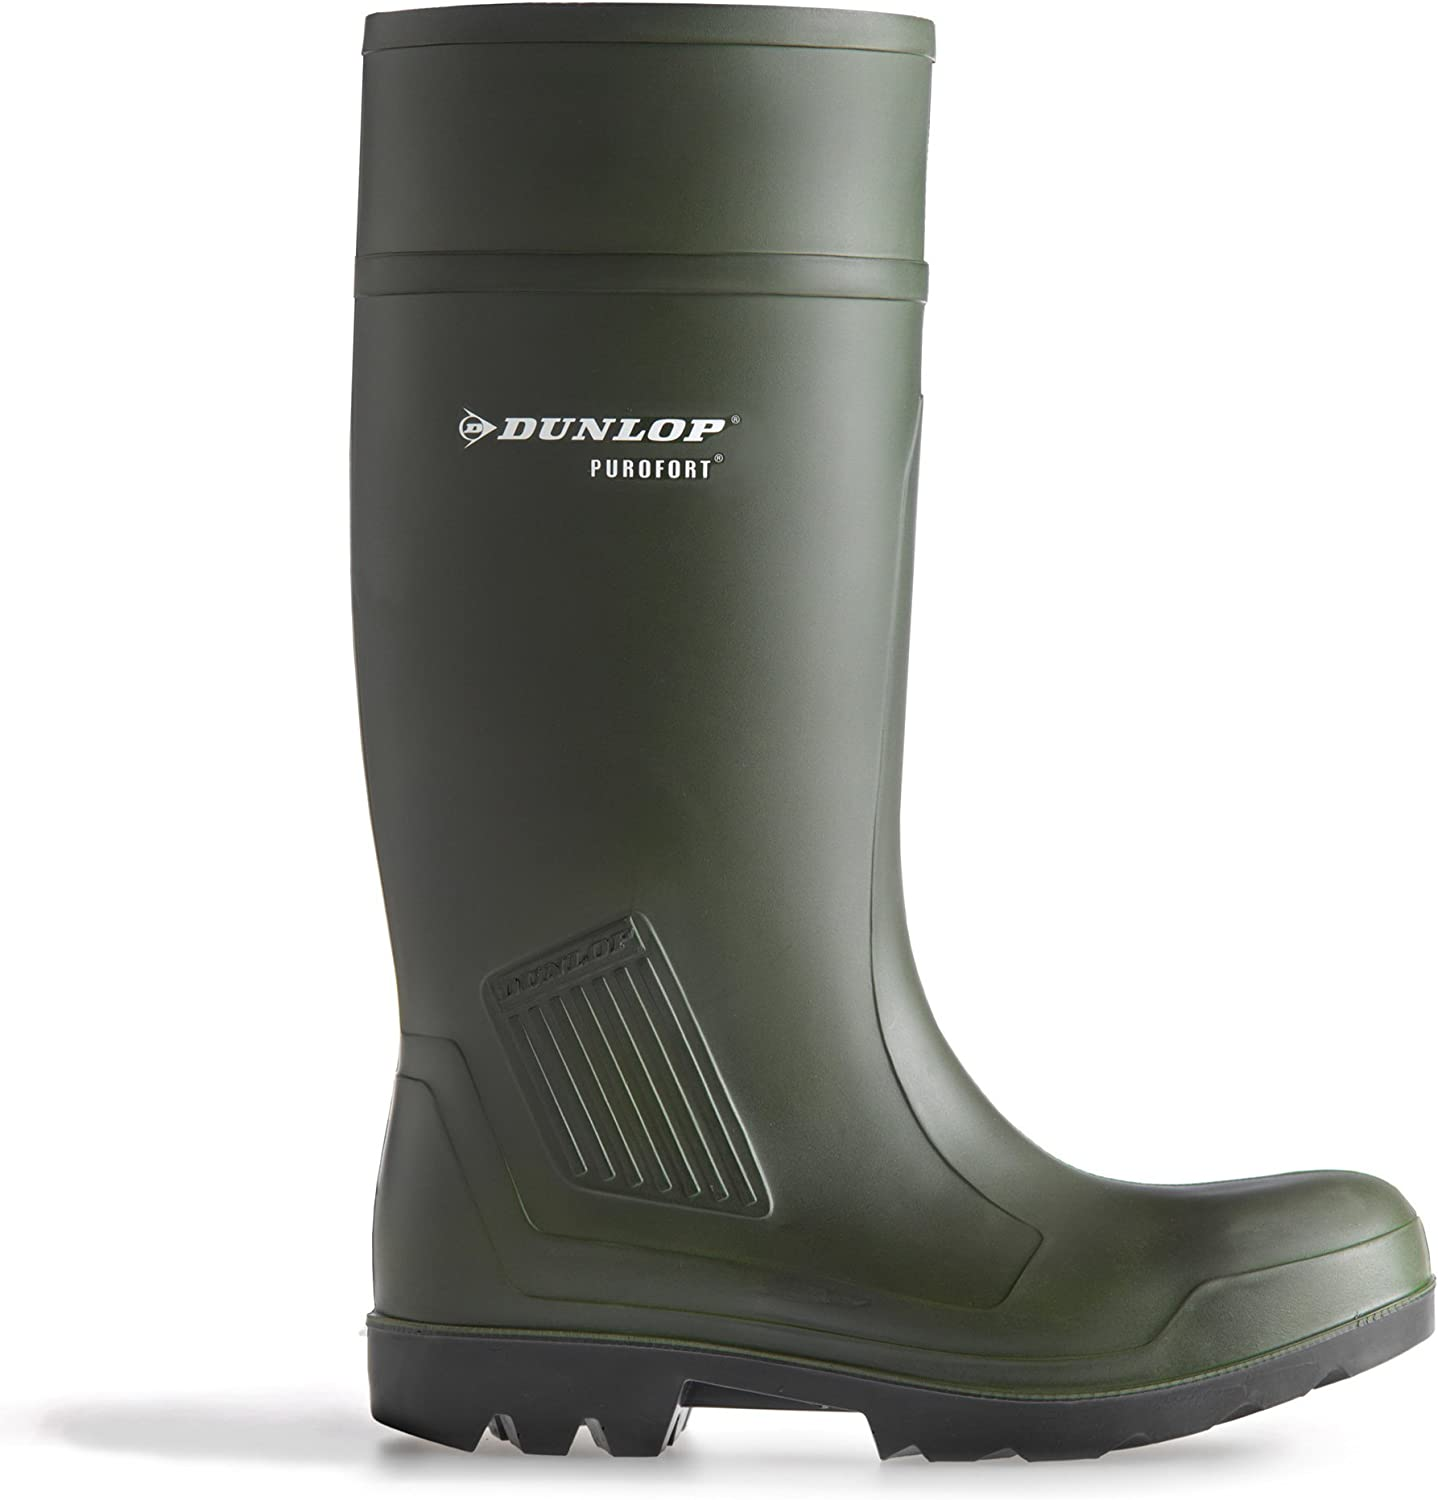 Dunlop Purofort Professional Safety C462933 Boxed Wellington Mens Boots (44 EUR) (Green)